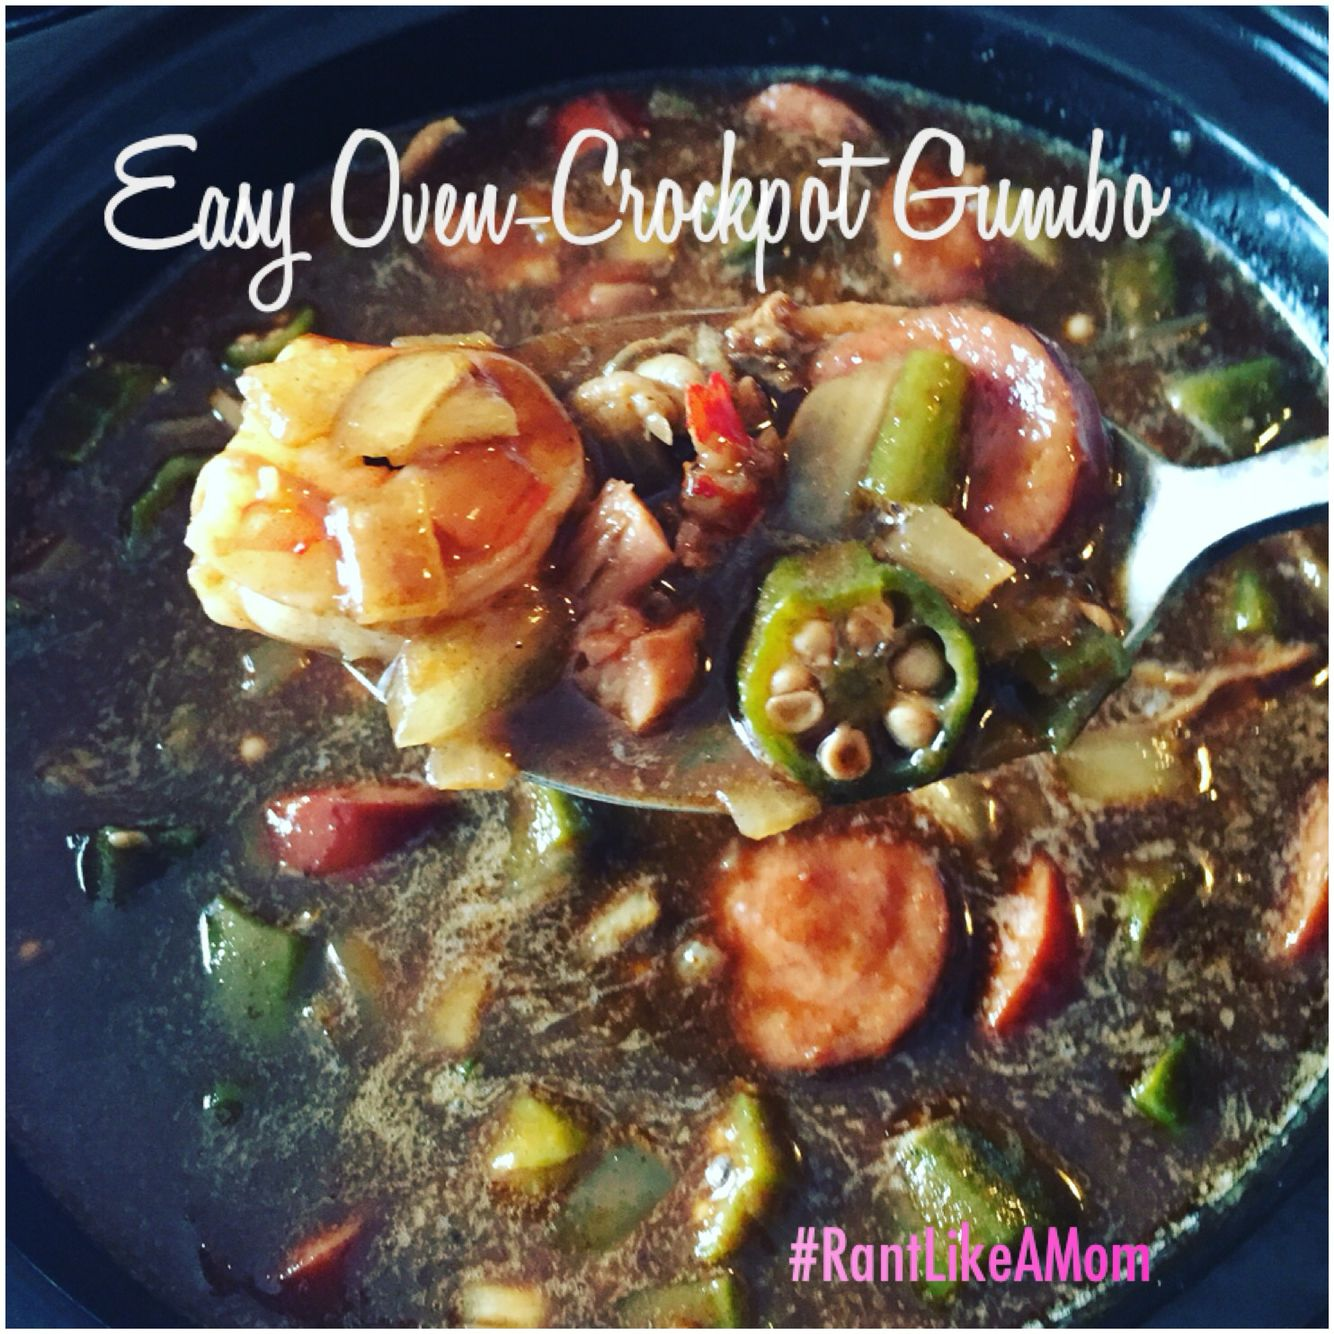 Louisiana-style gumbo from the oven to the crockpot... It doesn't get any easier than this!